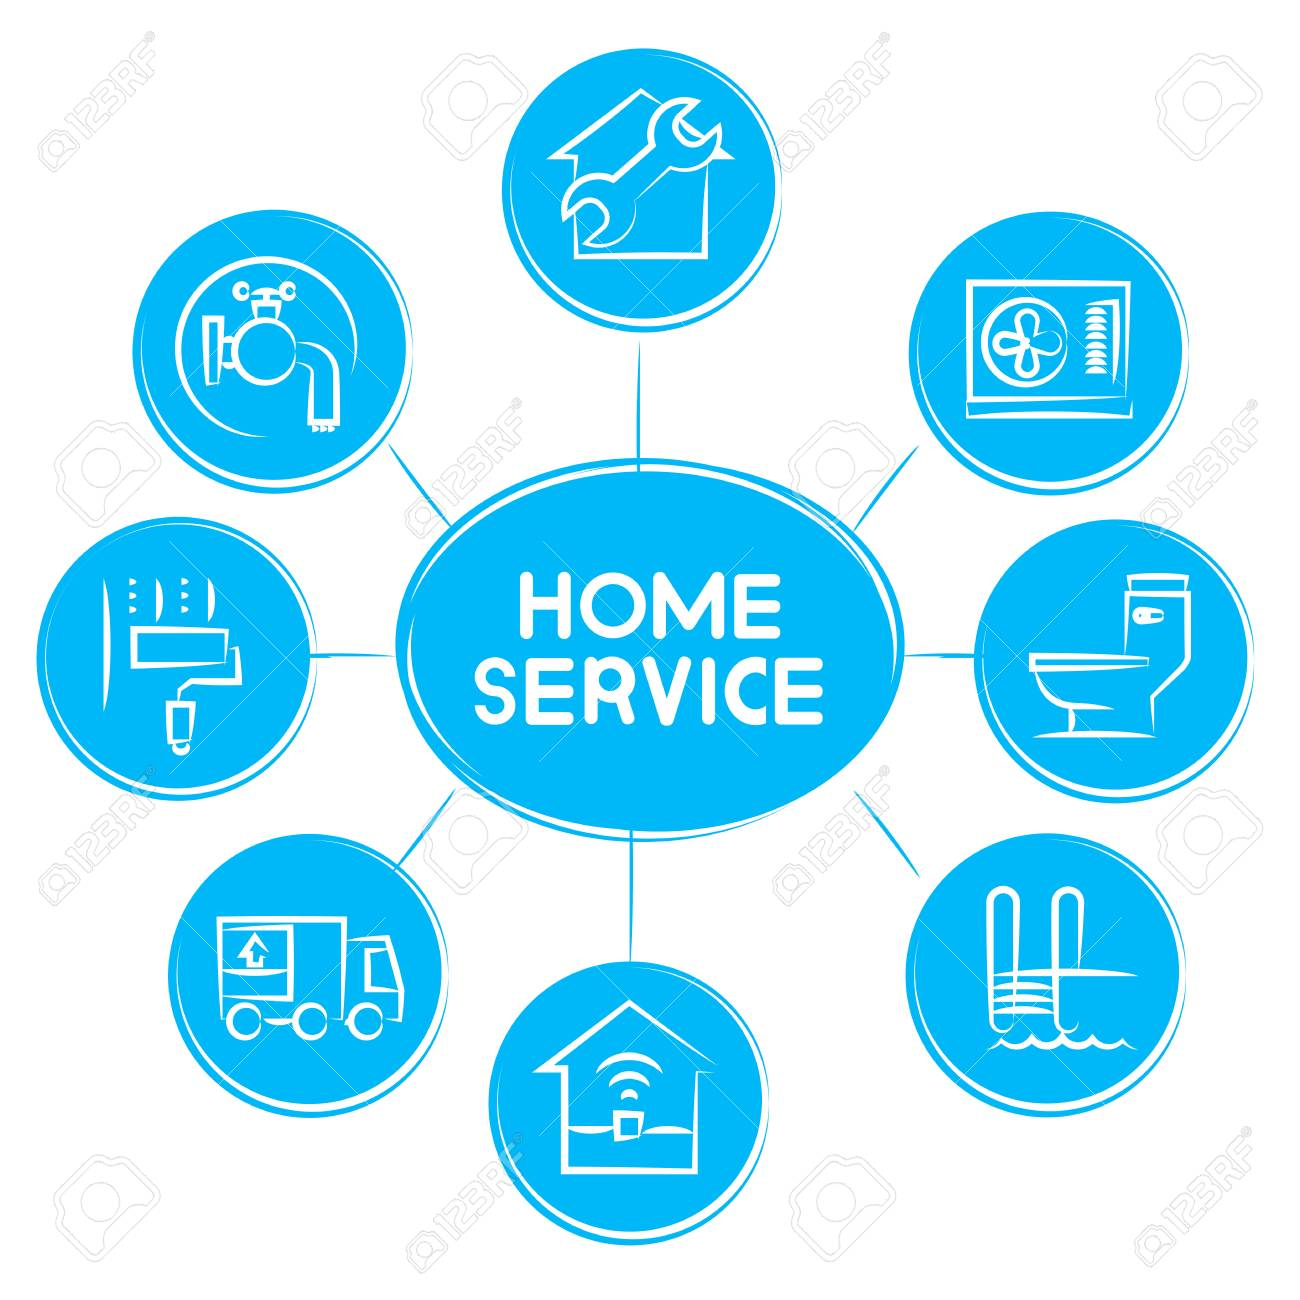 banque d'images - home service concept icons in blue diagram